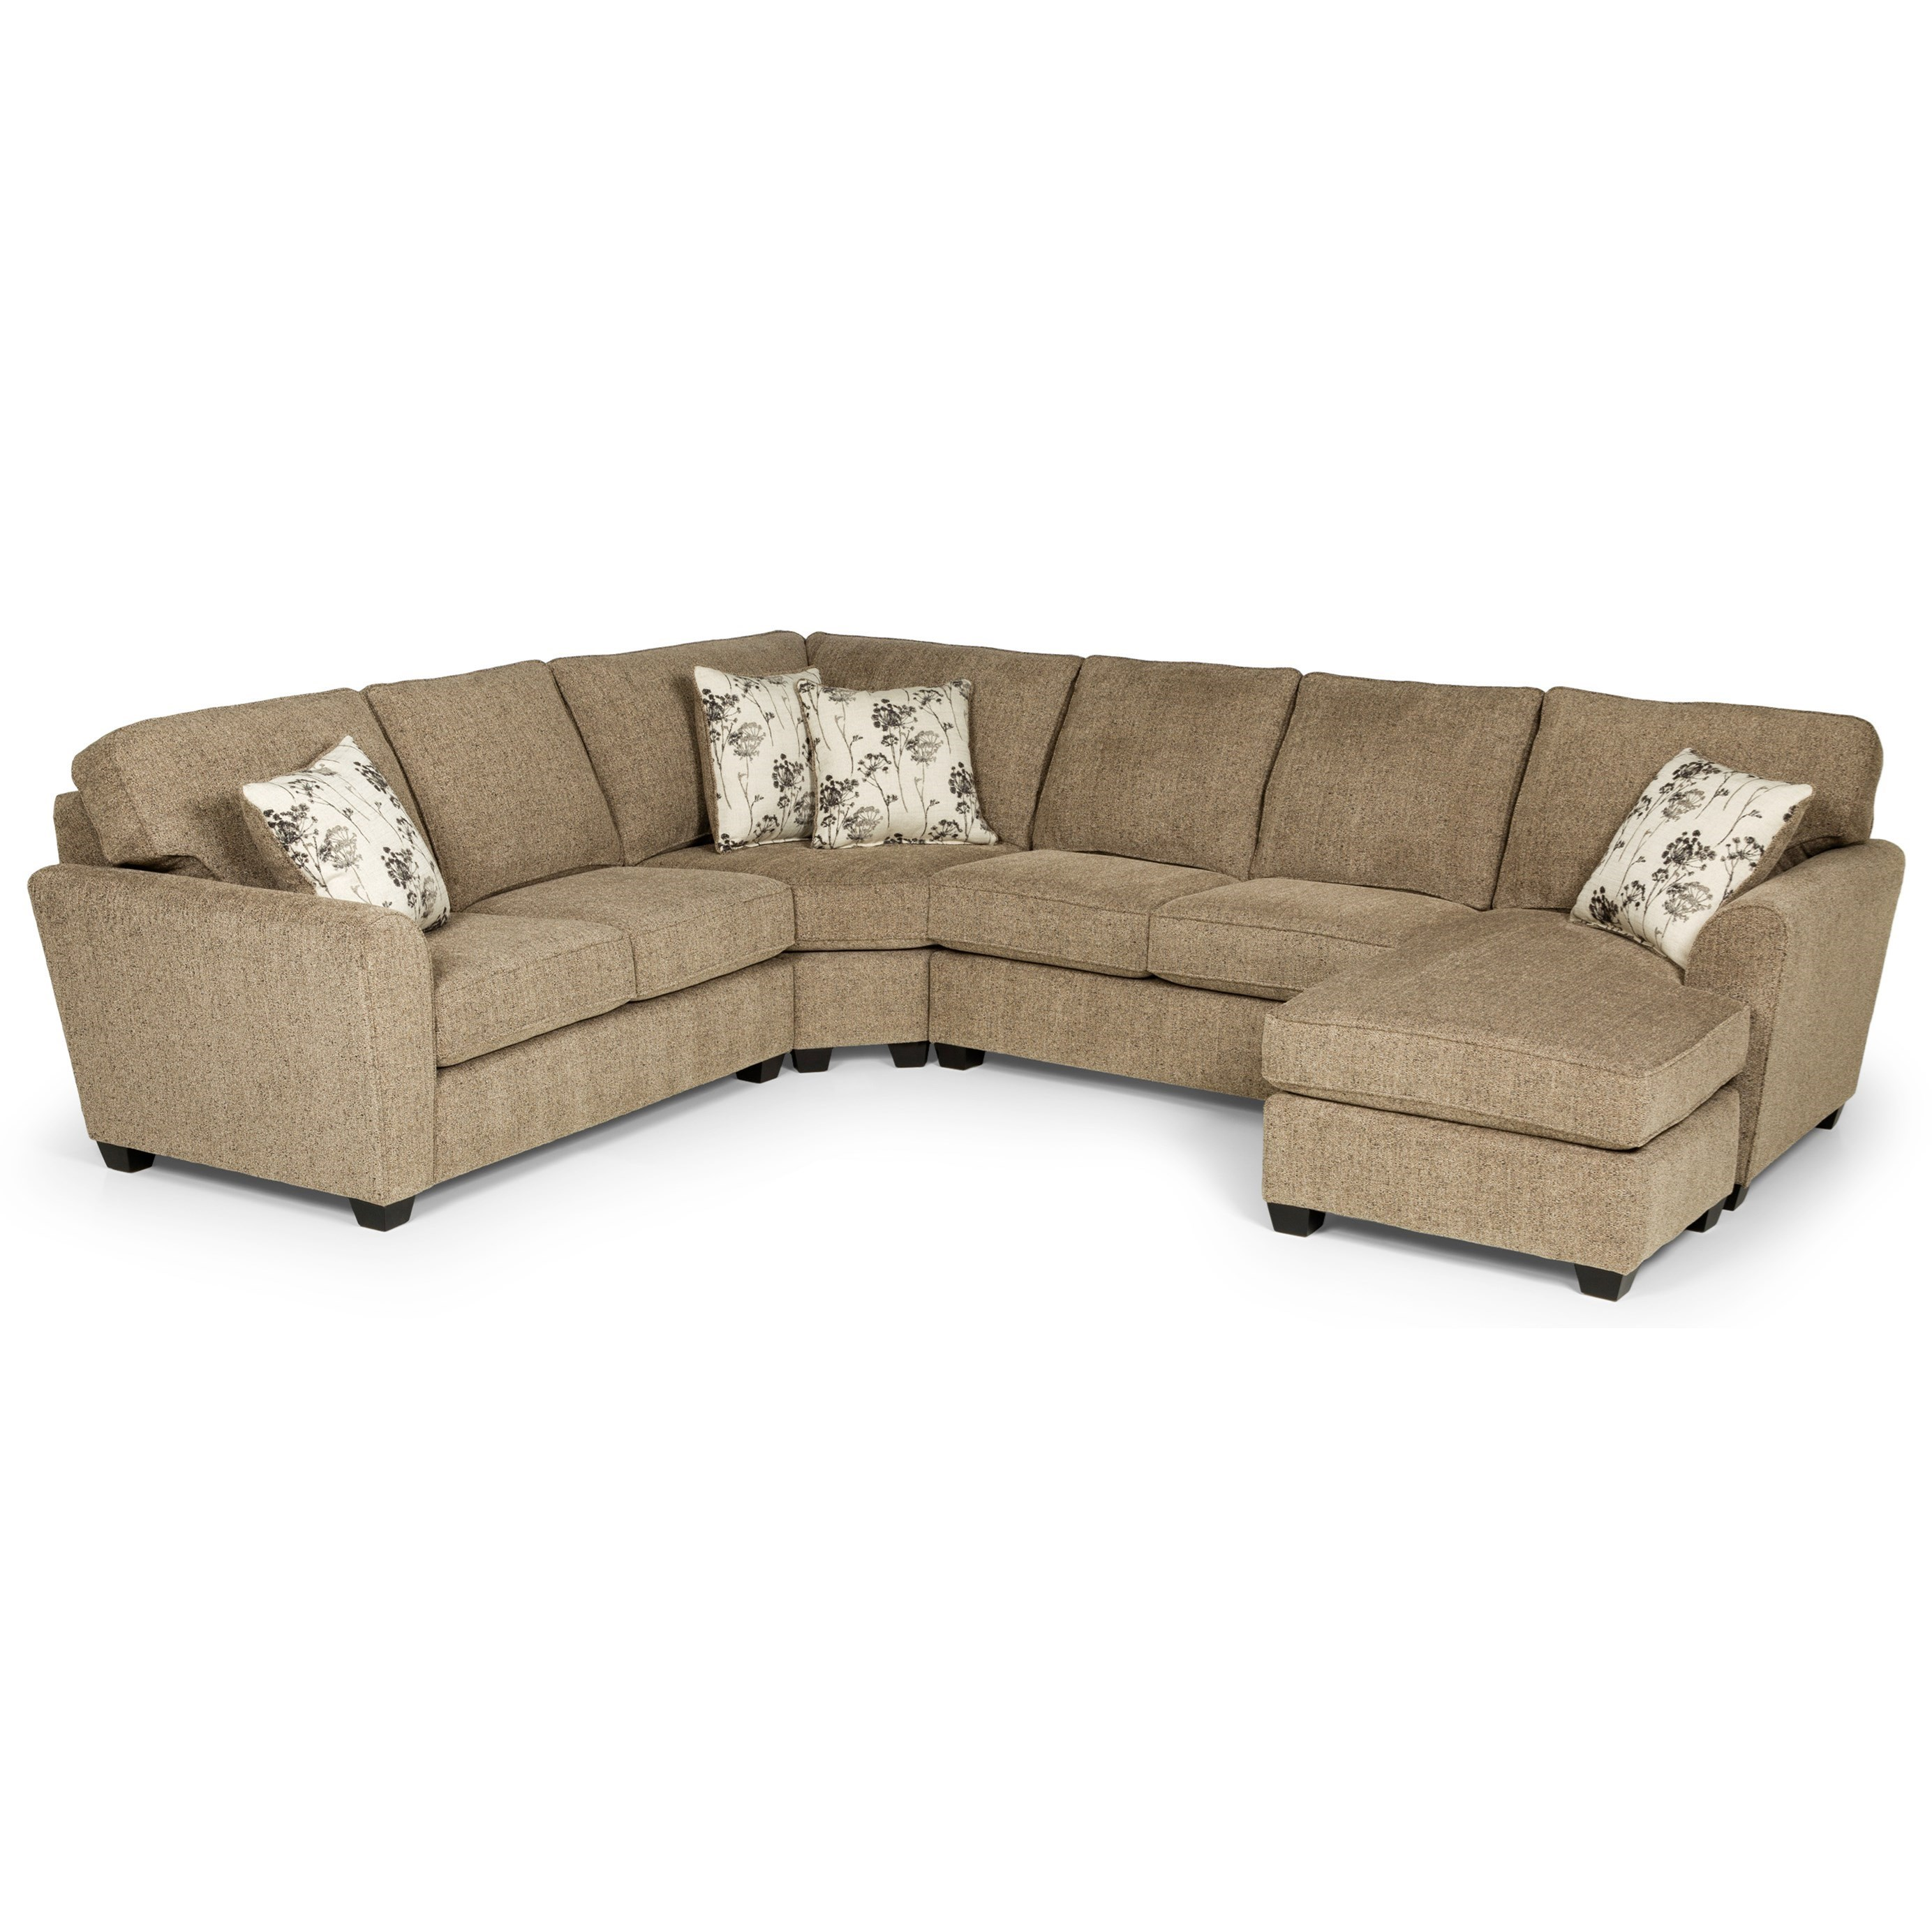 543 5-Seat Sectional Sofa w/ LAF Gel Sleeper by Stanton at Wilson's Furniture